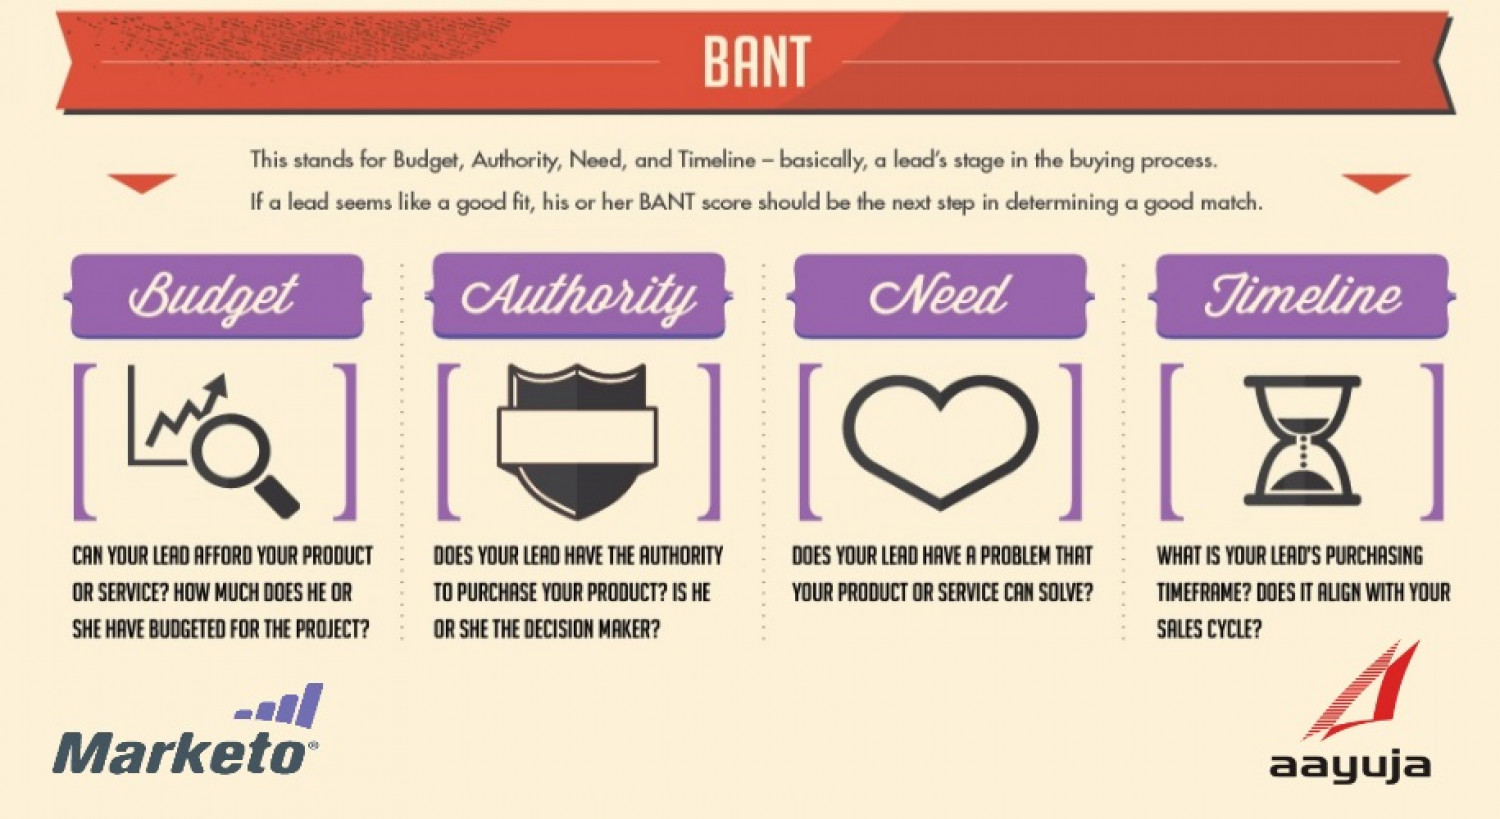 BANT Infographic